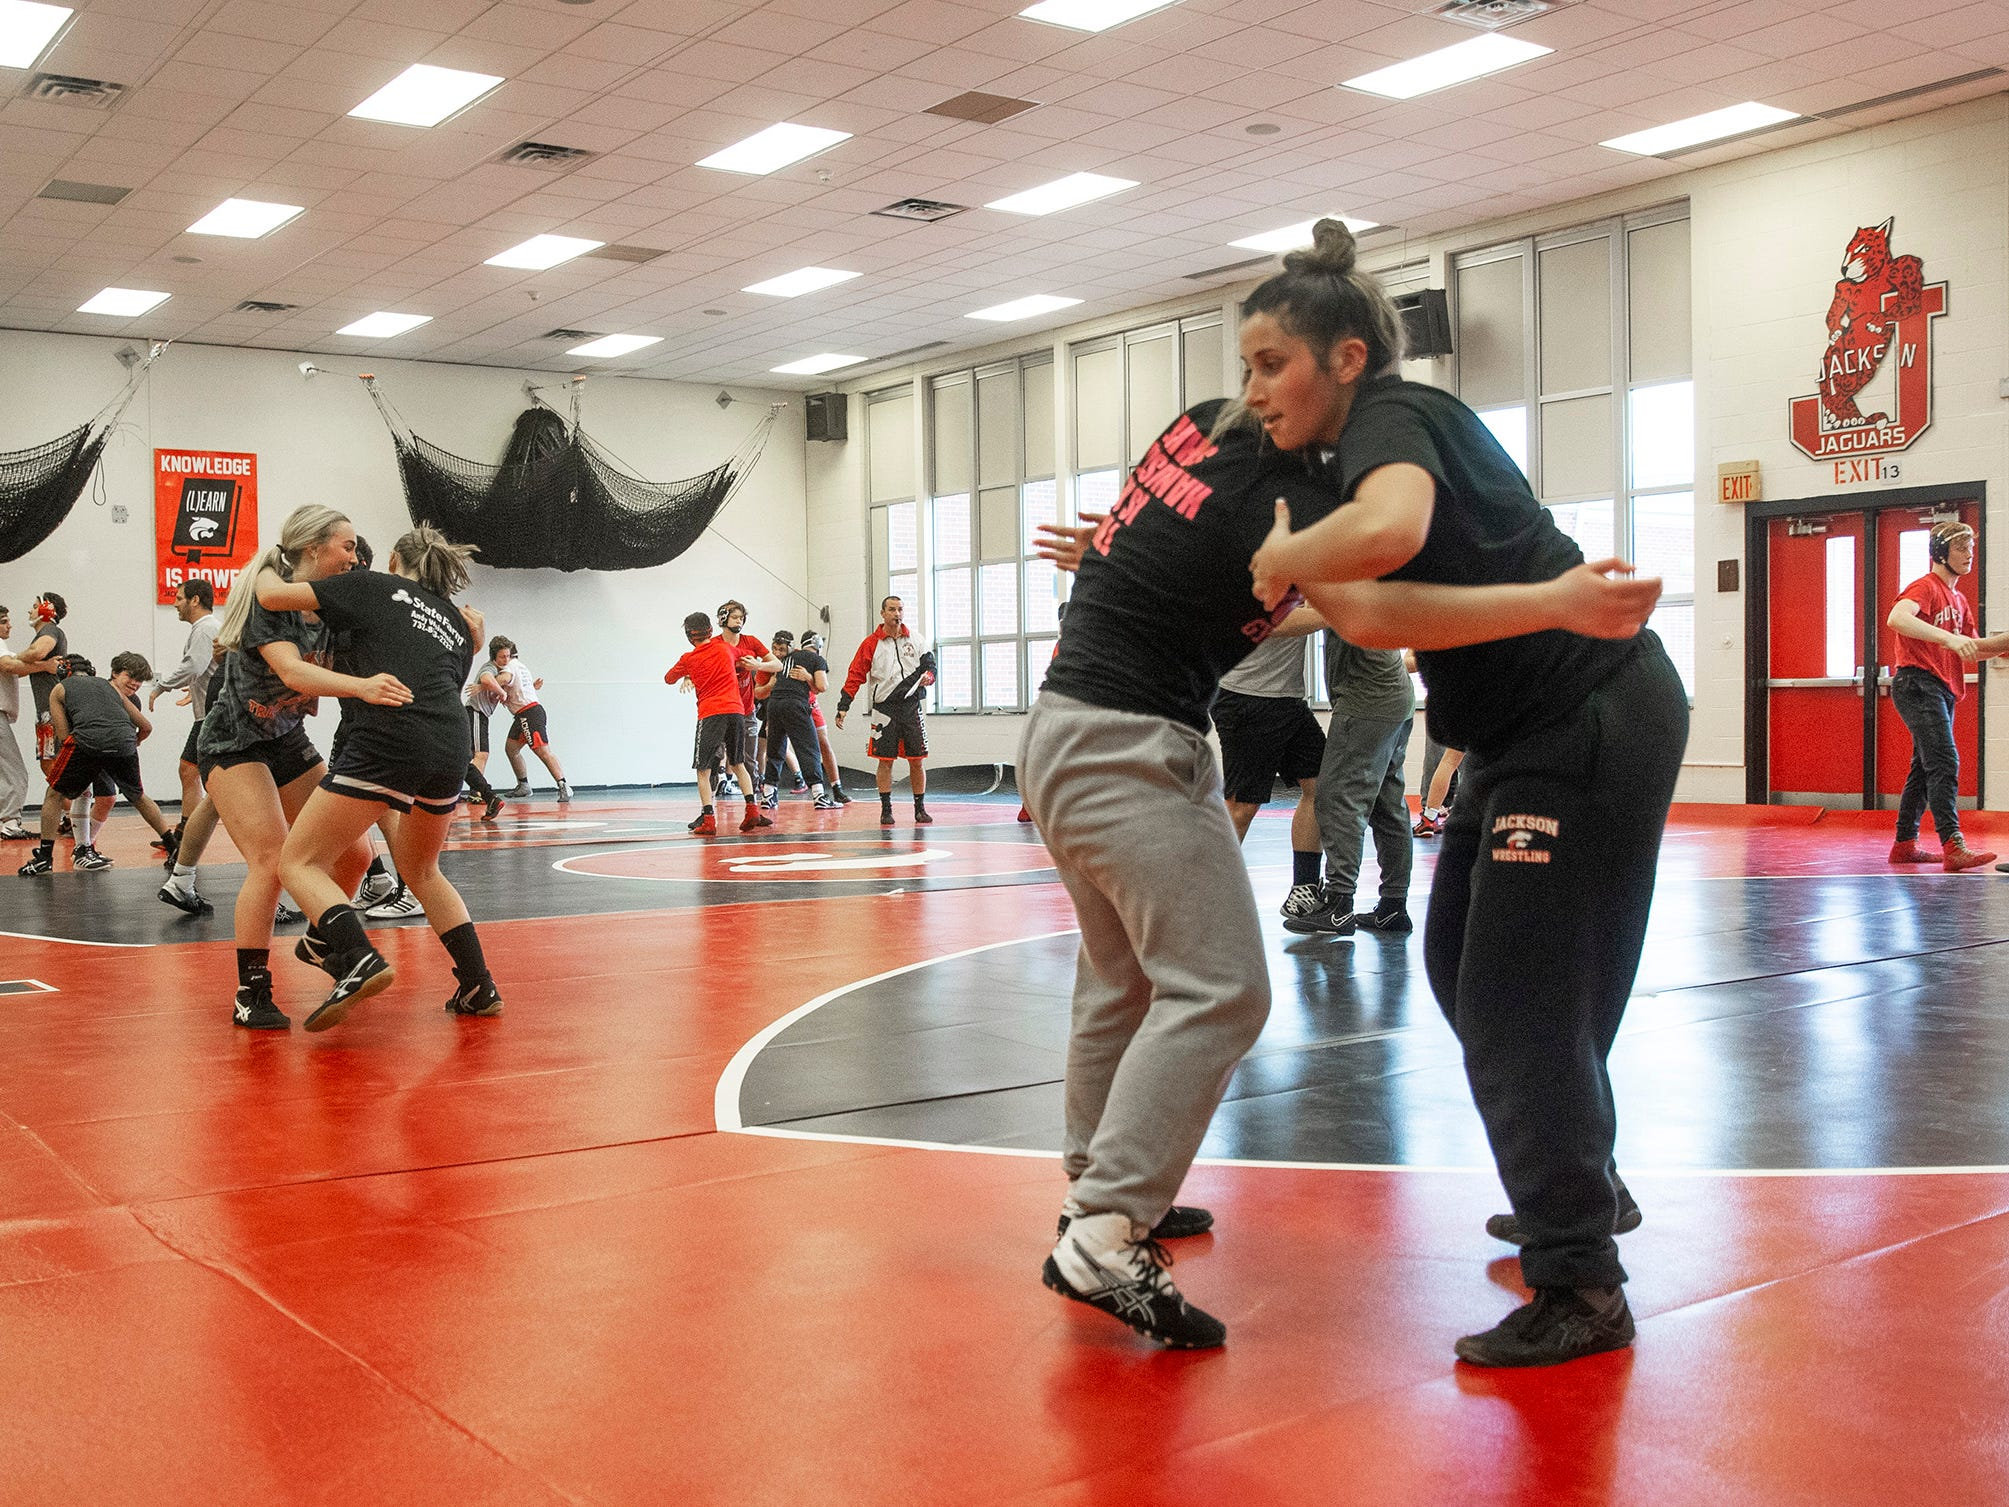 NJSIAA is offering wrestling for girls this year and they will participate in an all girls tournament at the end of the season. Jackson Memorial Wrestling is fielding a full girls team this year. Boy and girls practice together although mostly match up with partners of their own sex for most drills.